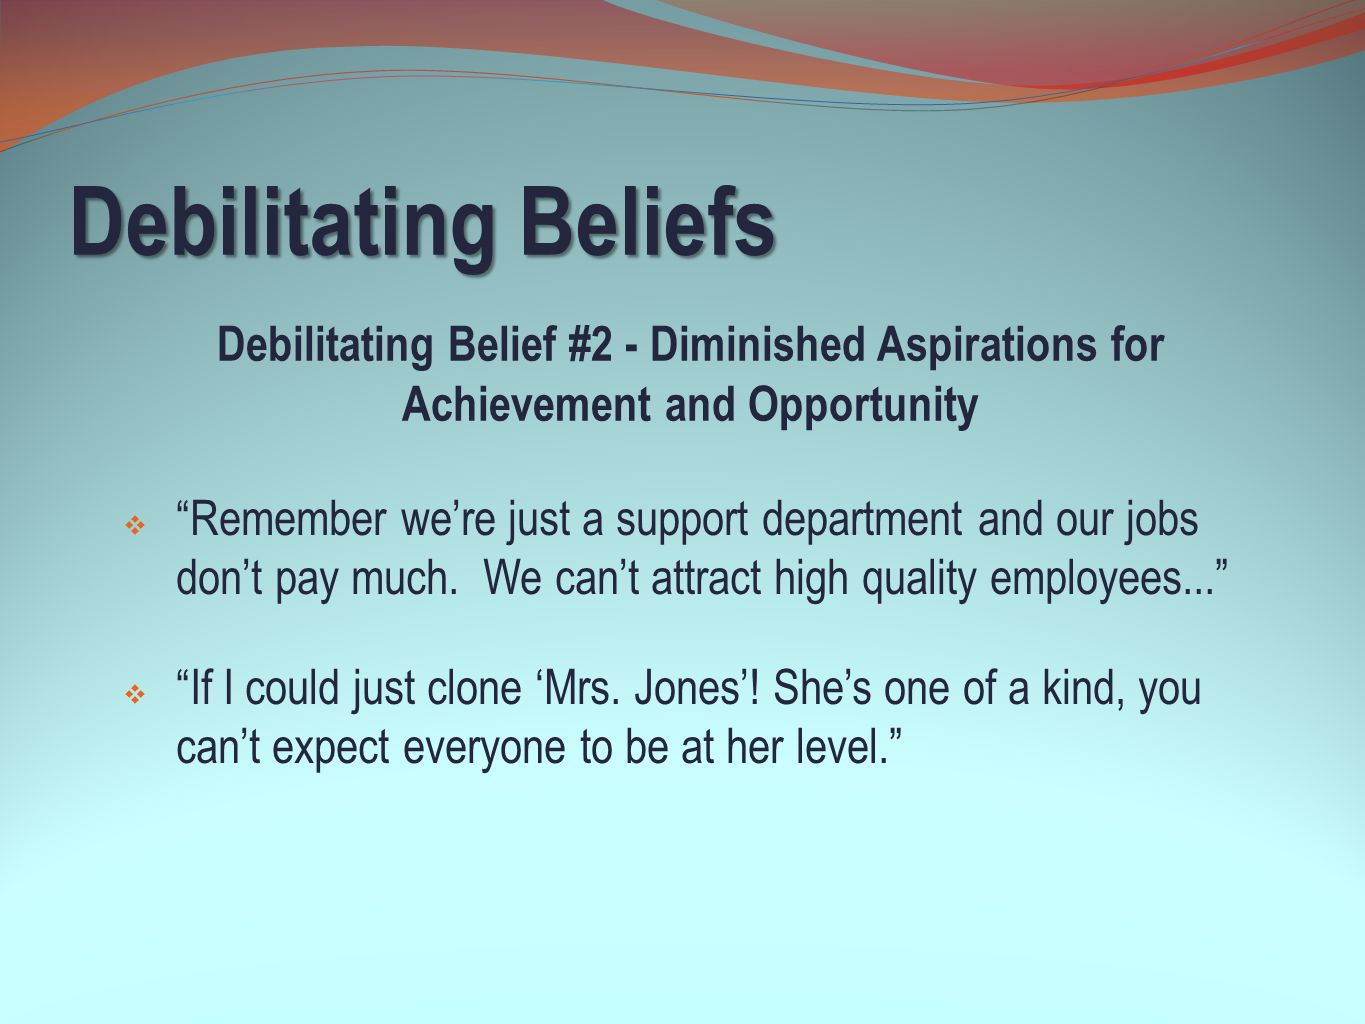 Debilitating Beliefs Debilitating Belief #2 - Diminished Aspirations for Achievement and Opportunity.